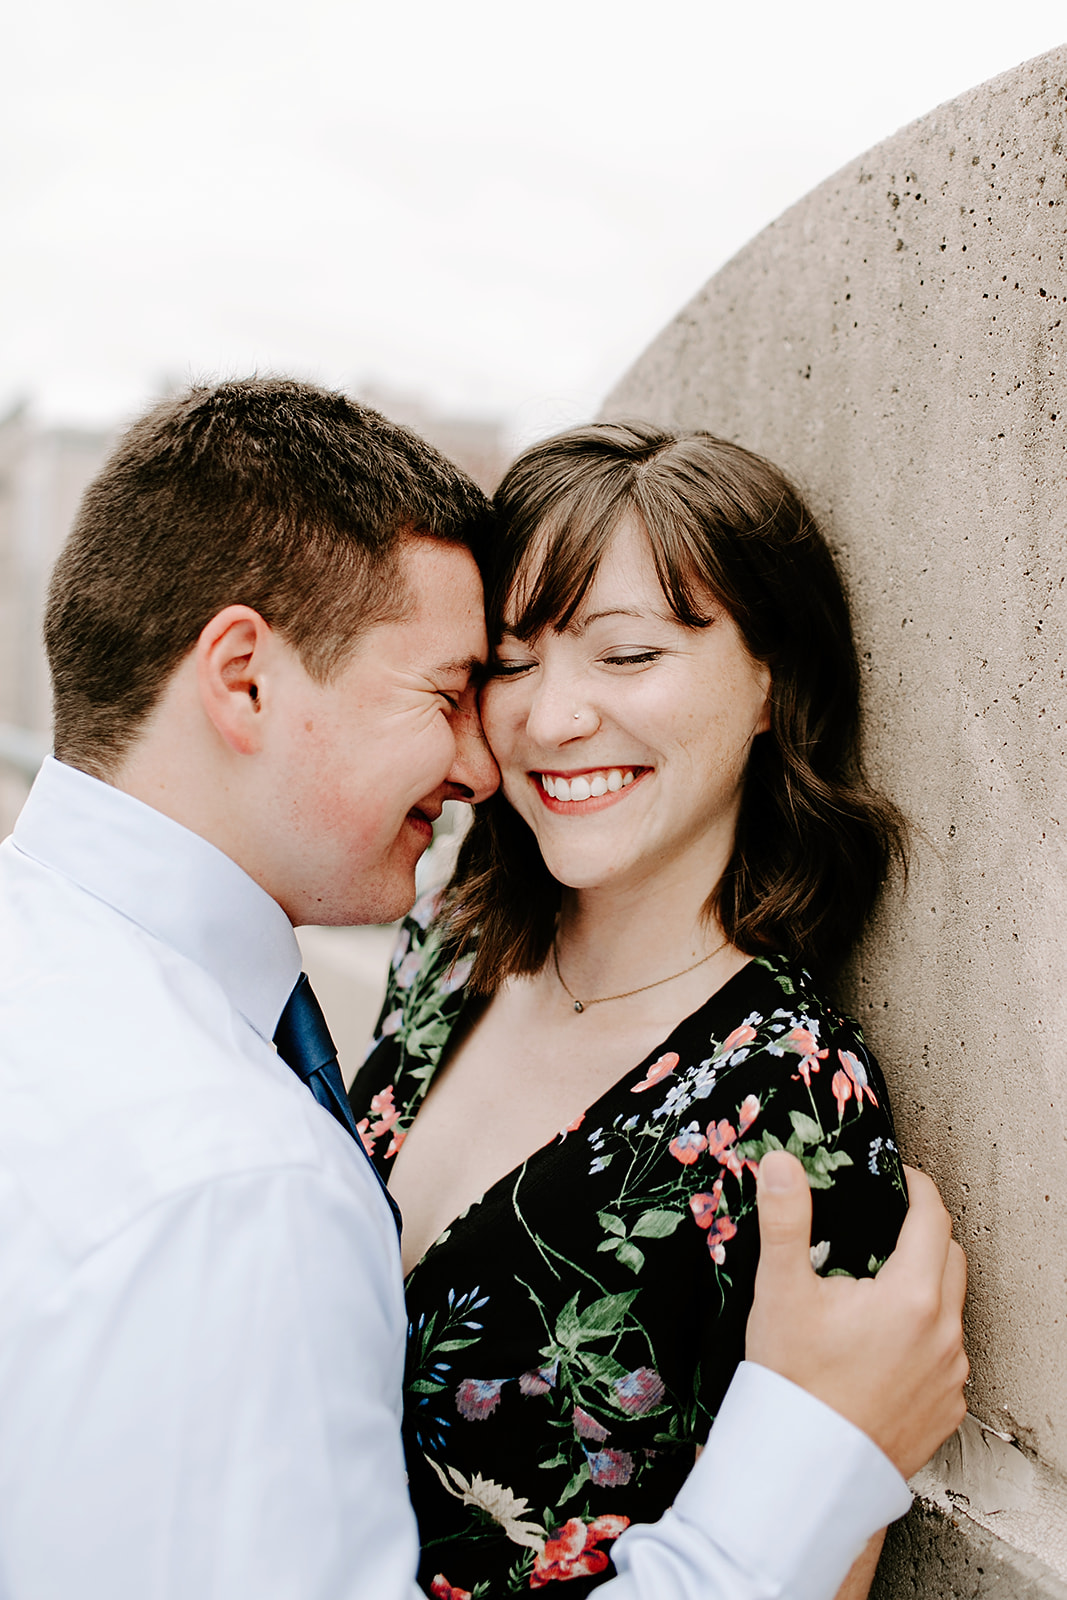 Click to browse the blog of this Downtown Indianapolis Engagement Session with Emily and Davis by Emily Wehner, Indianapolis photographer. Posing inspiration | Couples session location ideas | Urban engagement session #photography #engagementphotography #posinginspiration #urbancouplessession